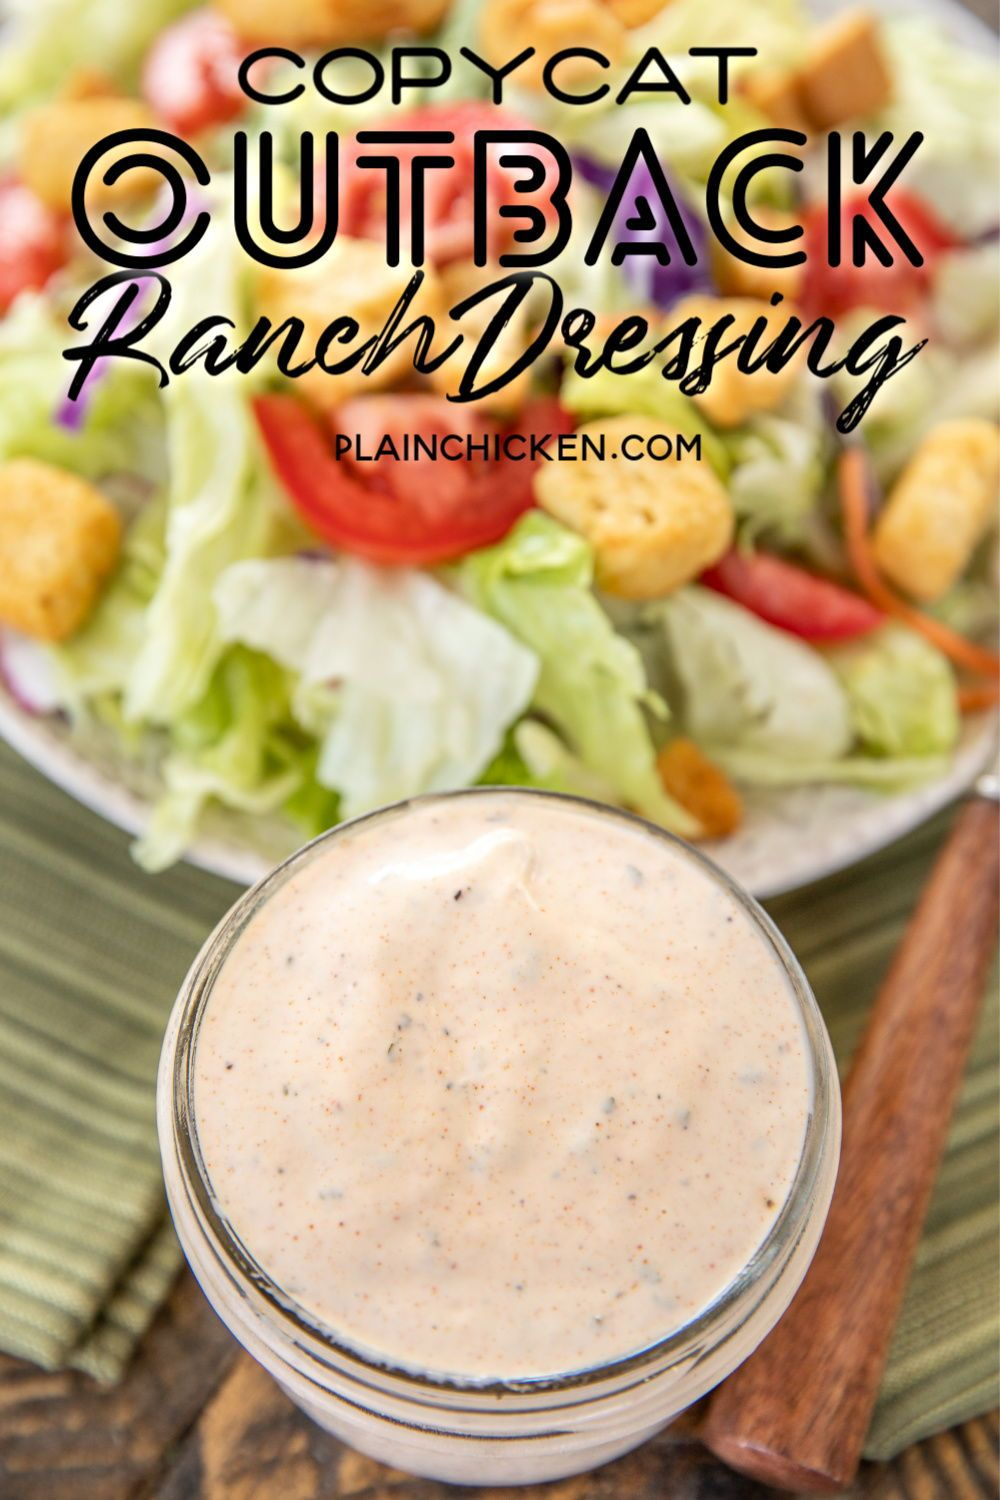 Copycat Outback Ranch Dressing Plain Chicken In 2020 Salad Dressing Recipes Homemade Homemade Salads Ranch Dressing Recipe